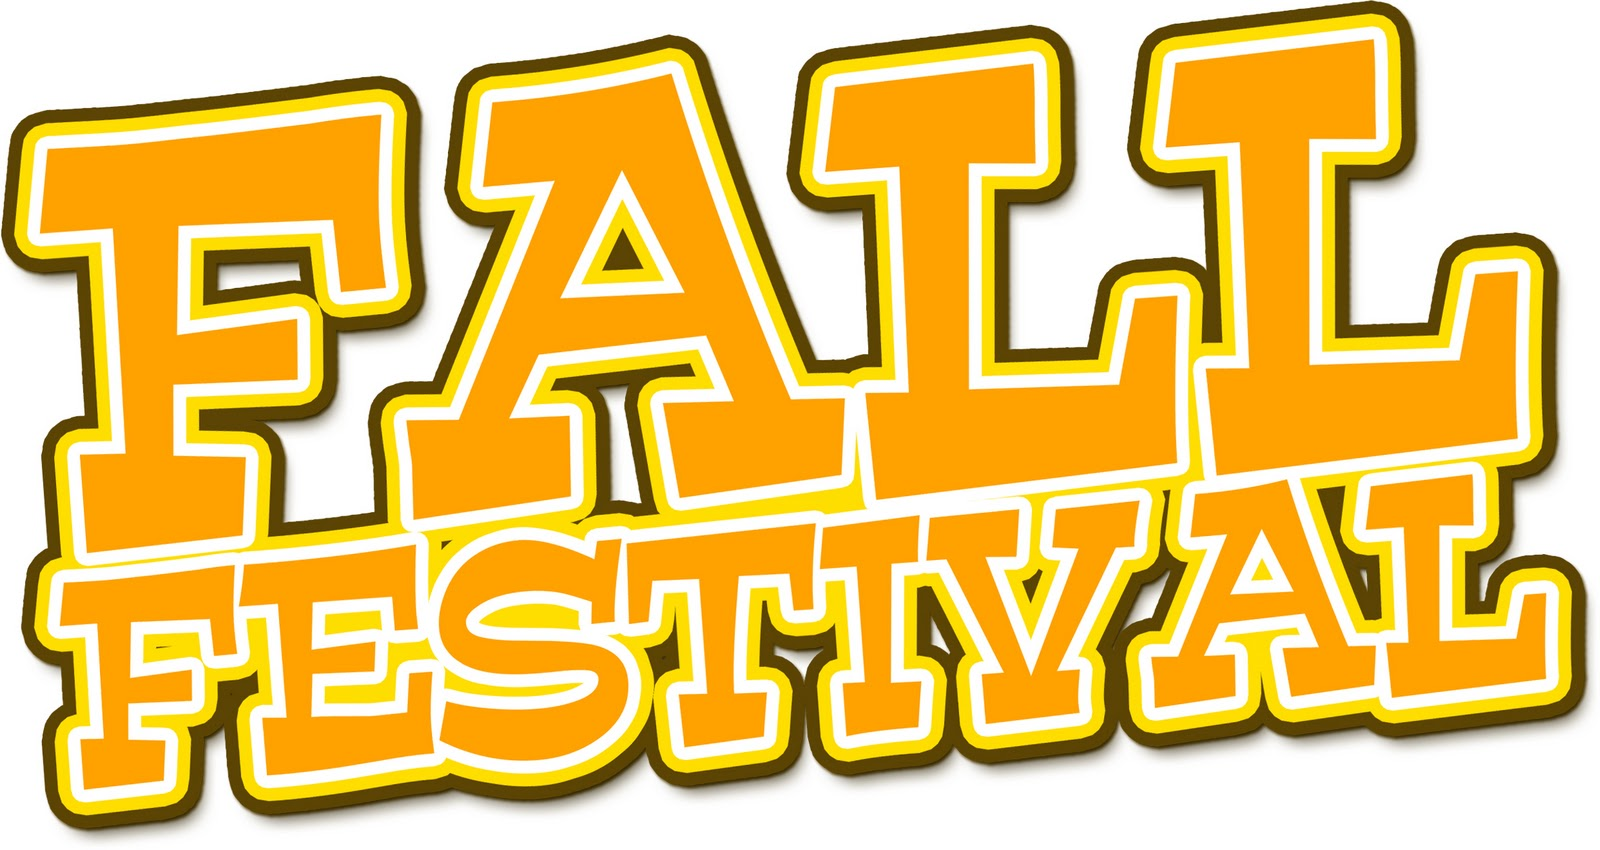 Displaying 14 Images For Church Fall Festival Clipart